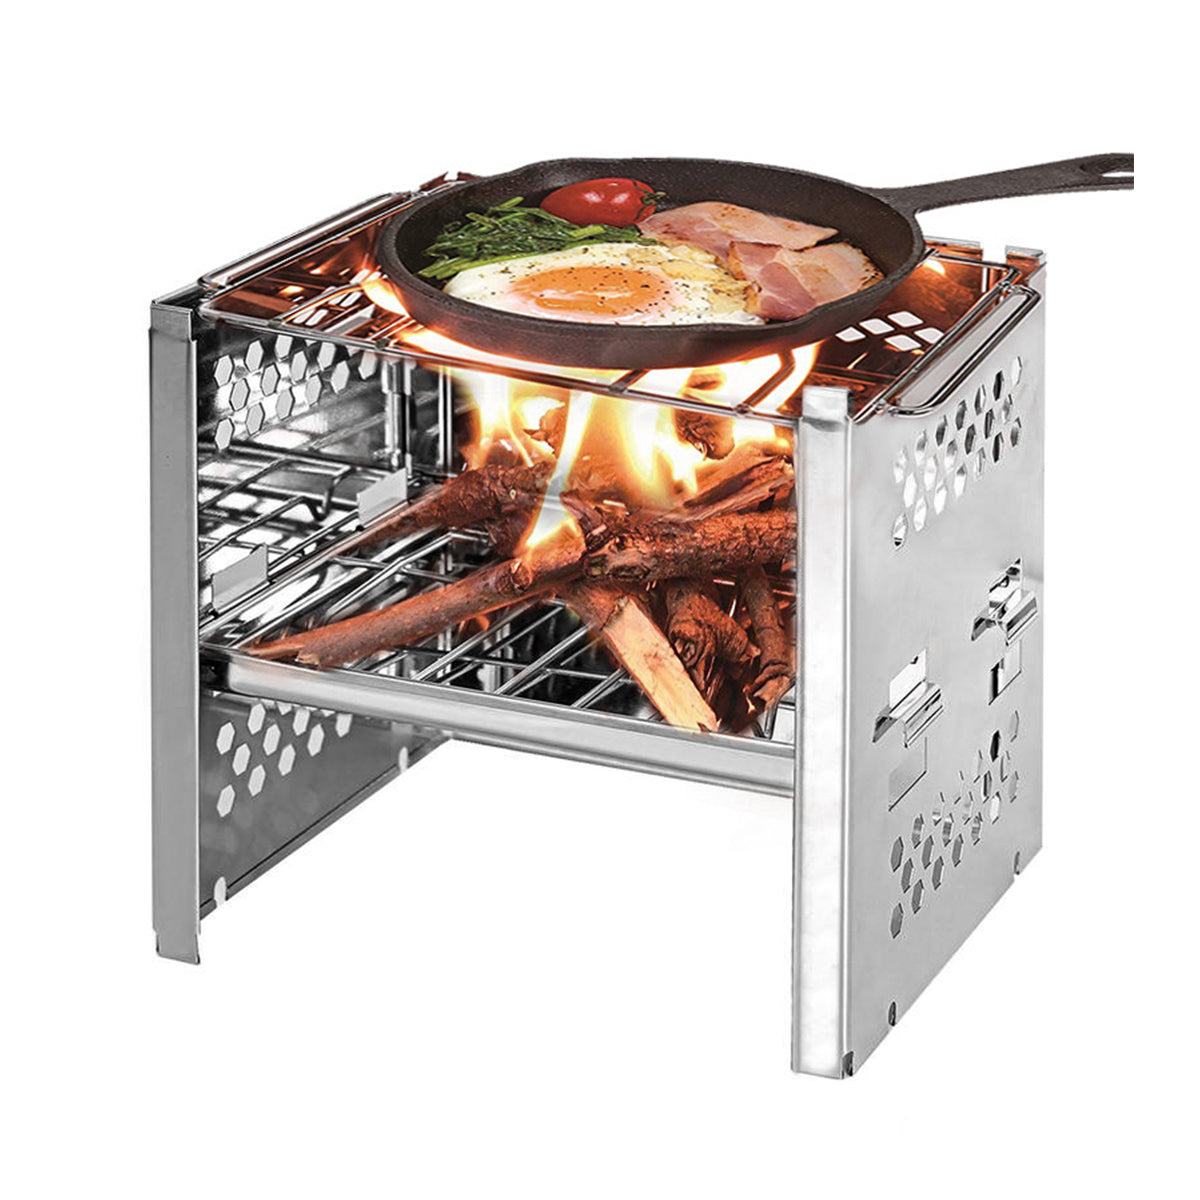 Duurzame opvouwbare BBQ-grill Barbecue kachel Outdoor picknick Camping BBQ-grill met opbergtas